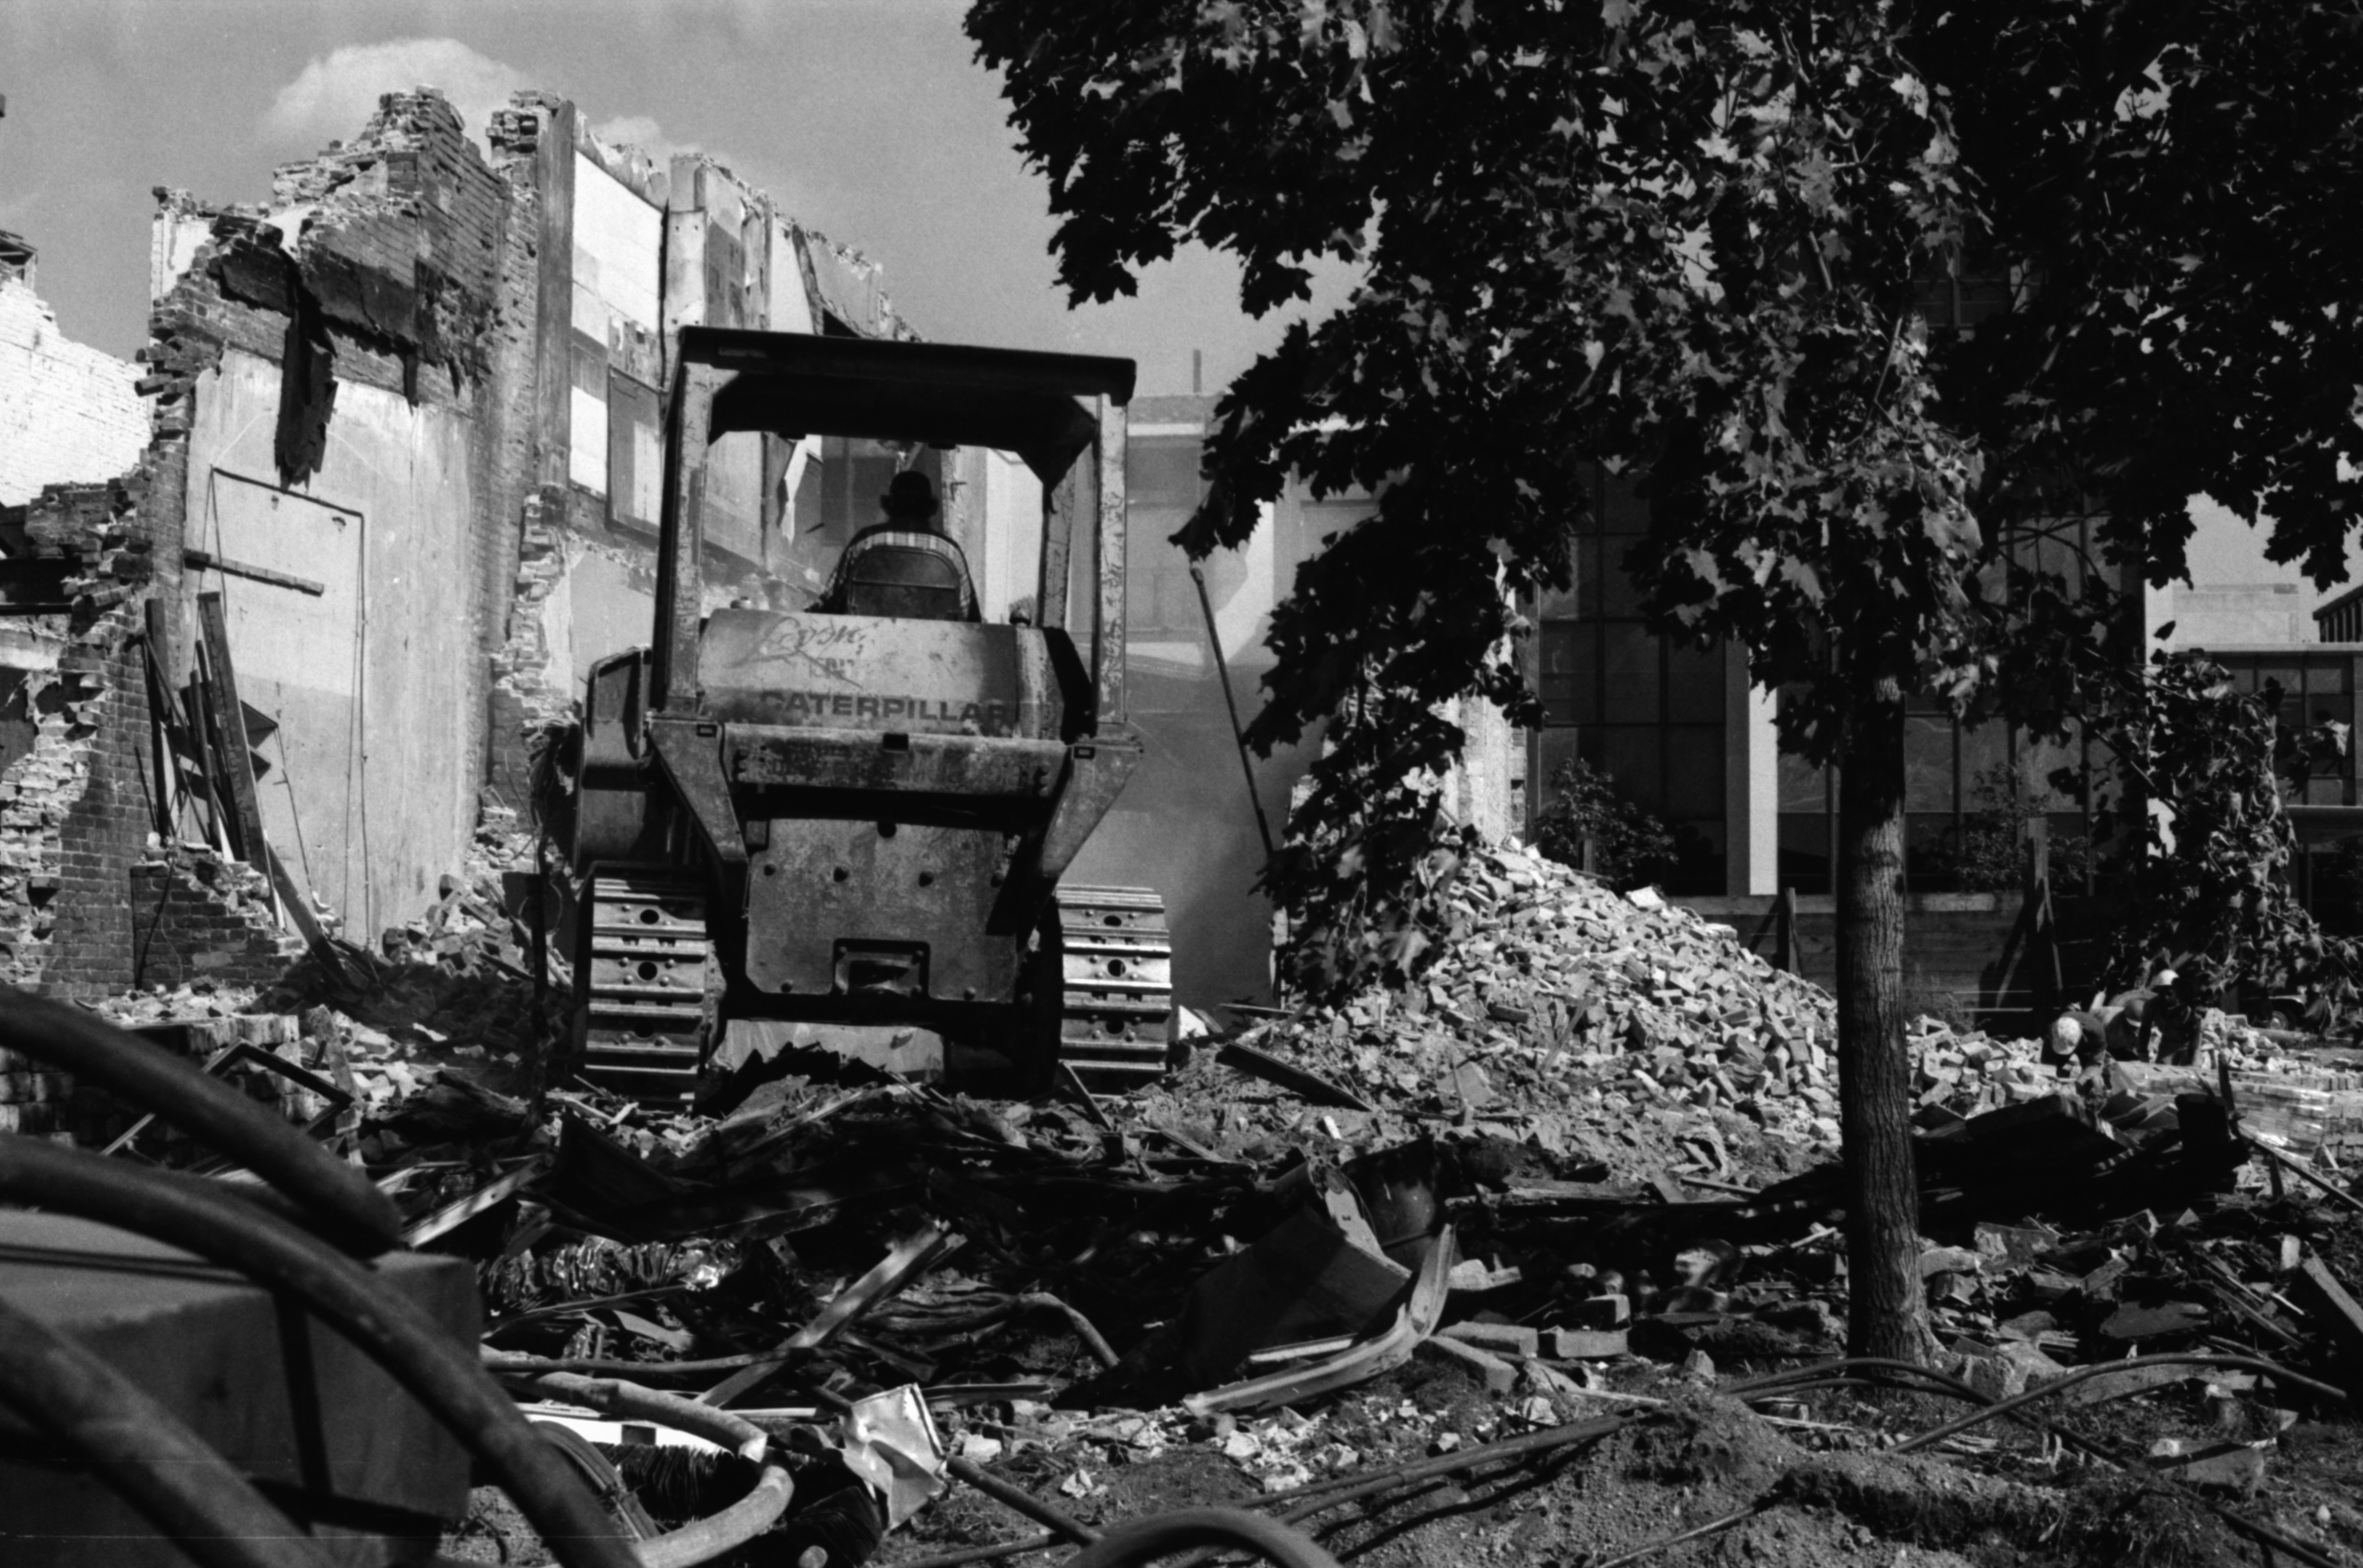 Demolition Of Joe's Star Lounge, September 1985 image